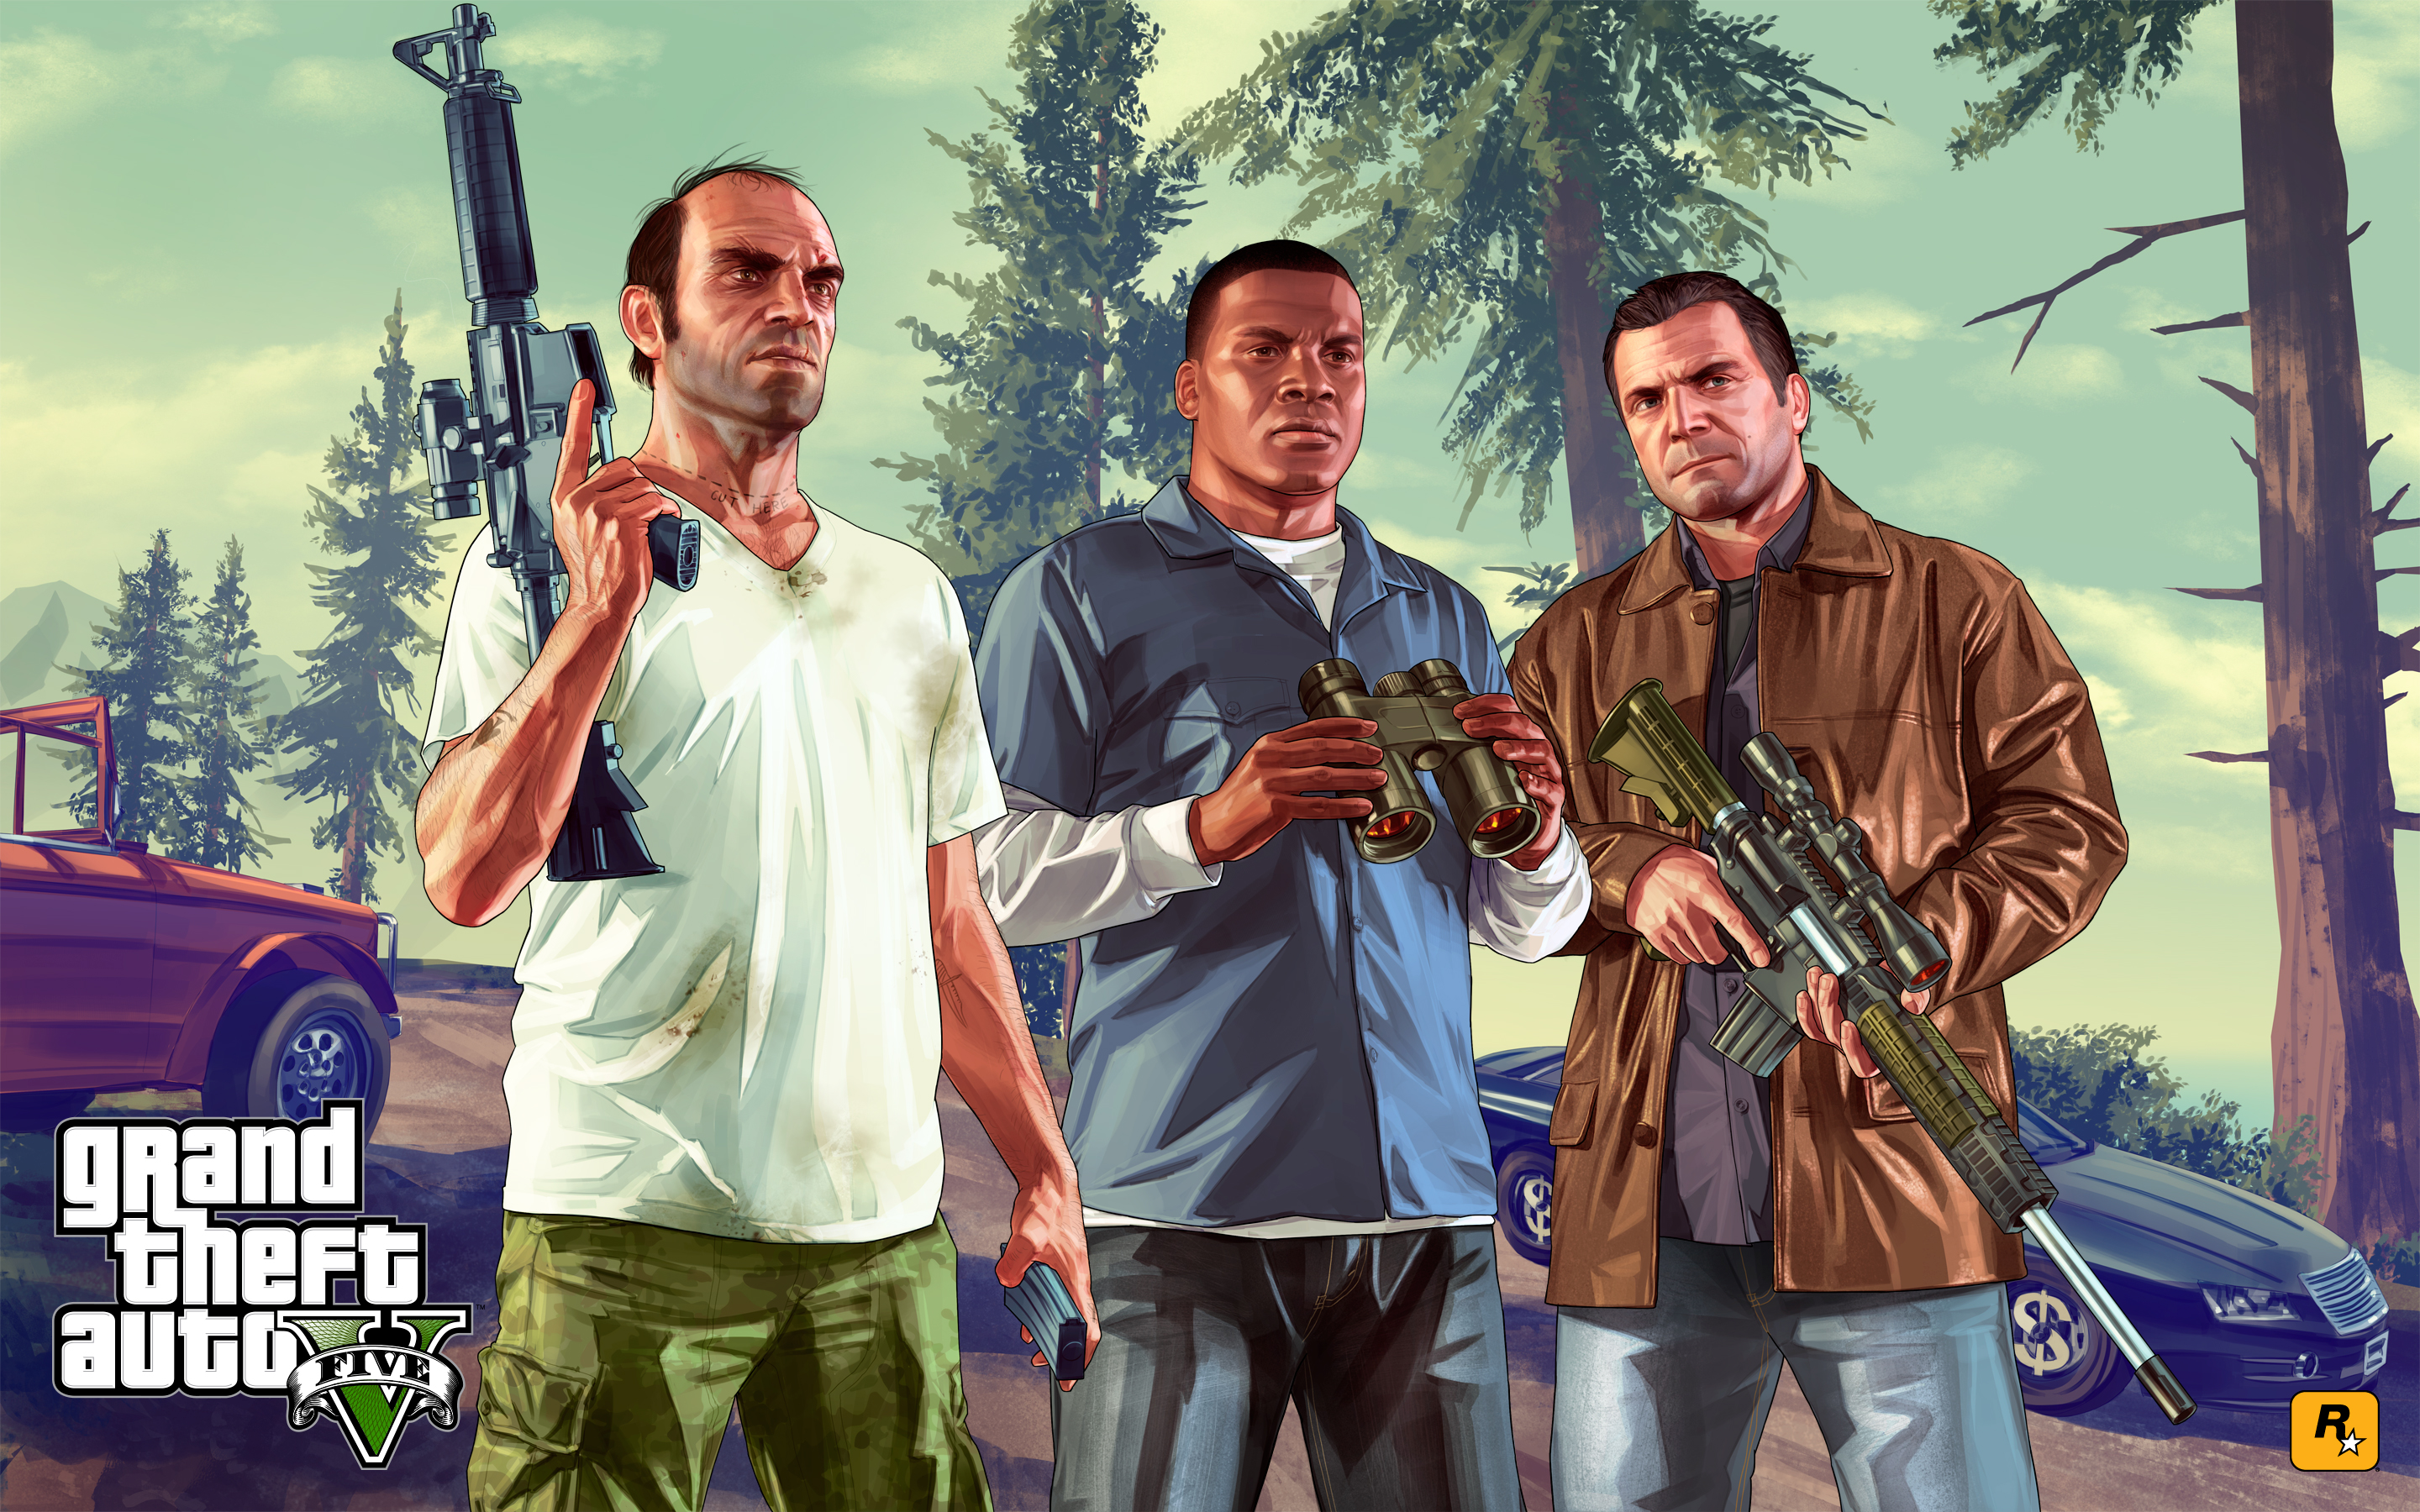 HD Wallpapers Gr Theft Auto GTA 5